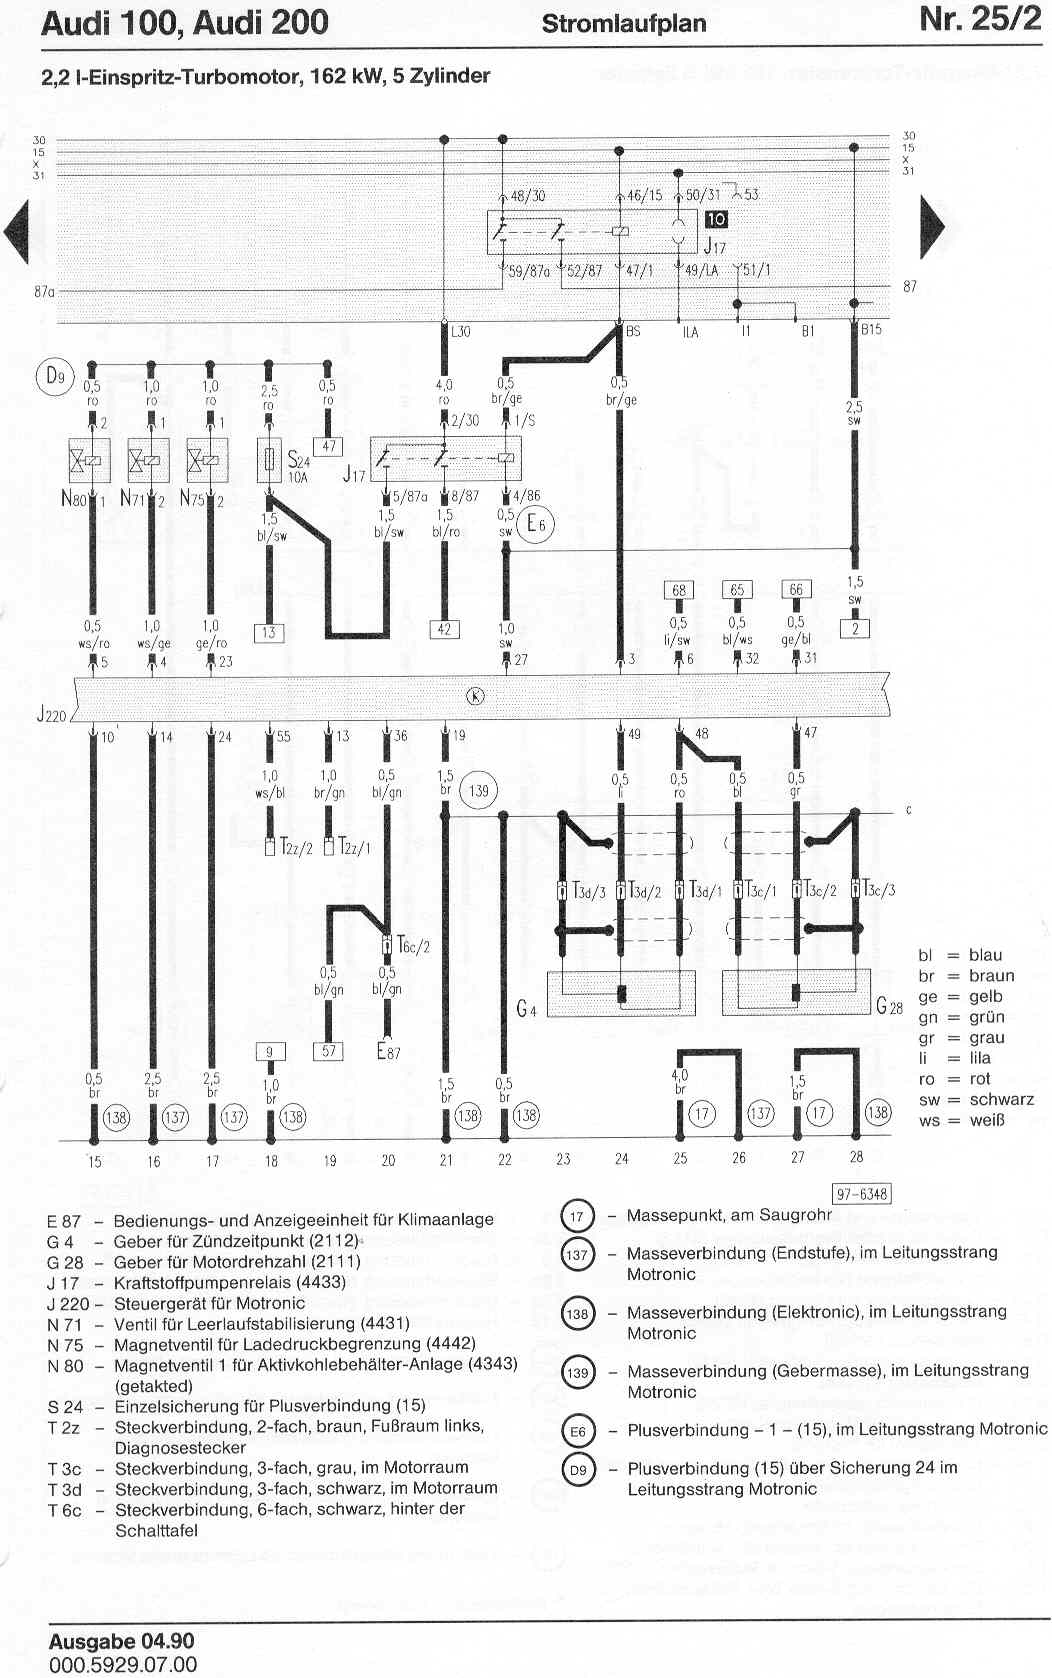 1989 Audi 100 Quattro Fuel Pump Wiring Diagram, 1989, Free